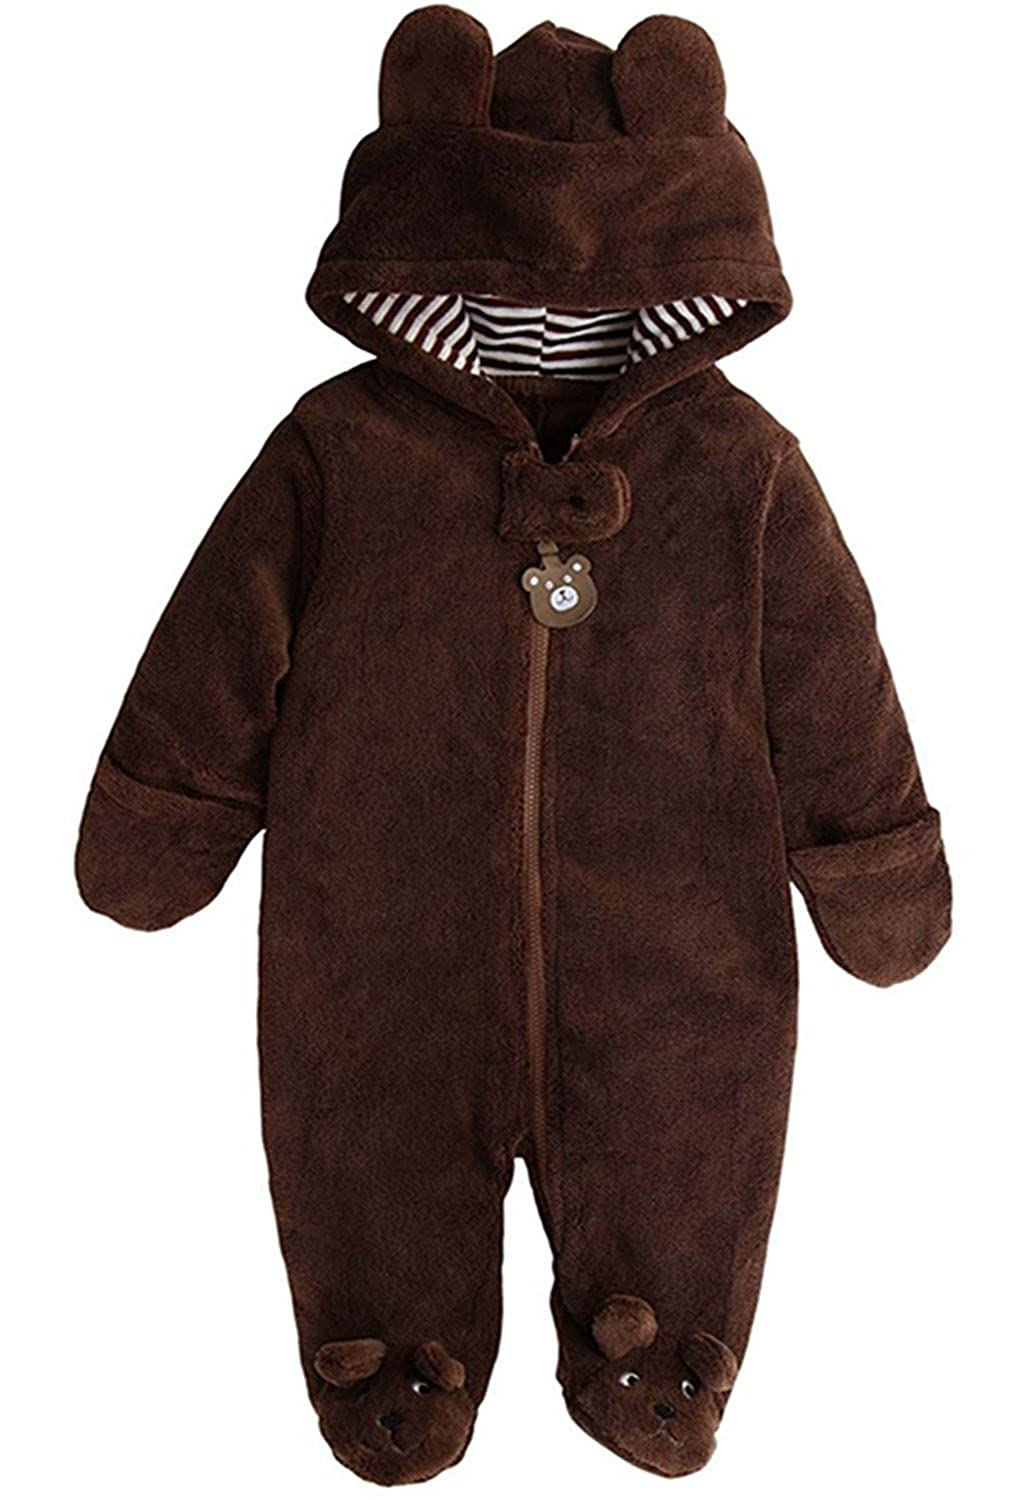 Newborn Baby Boys Girls Cute Bear Winter Fleece Hoodie Romper Jumpsuit Outfits